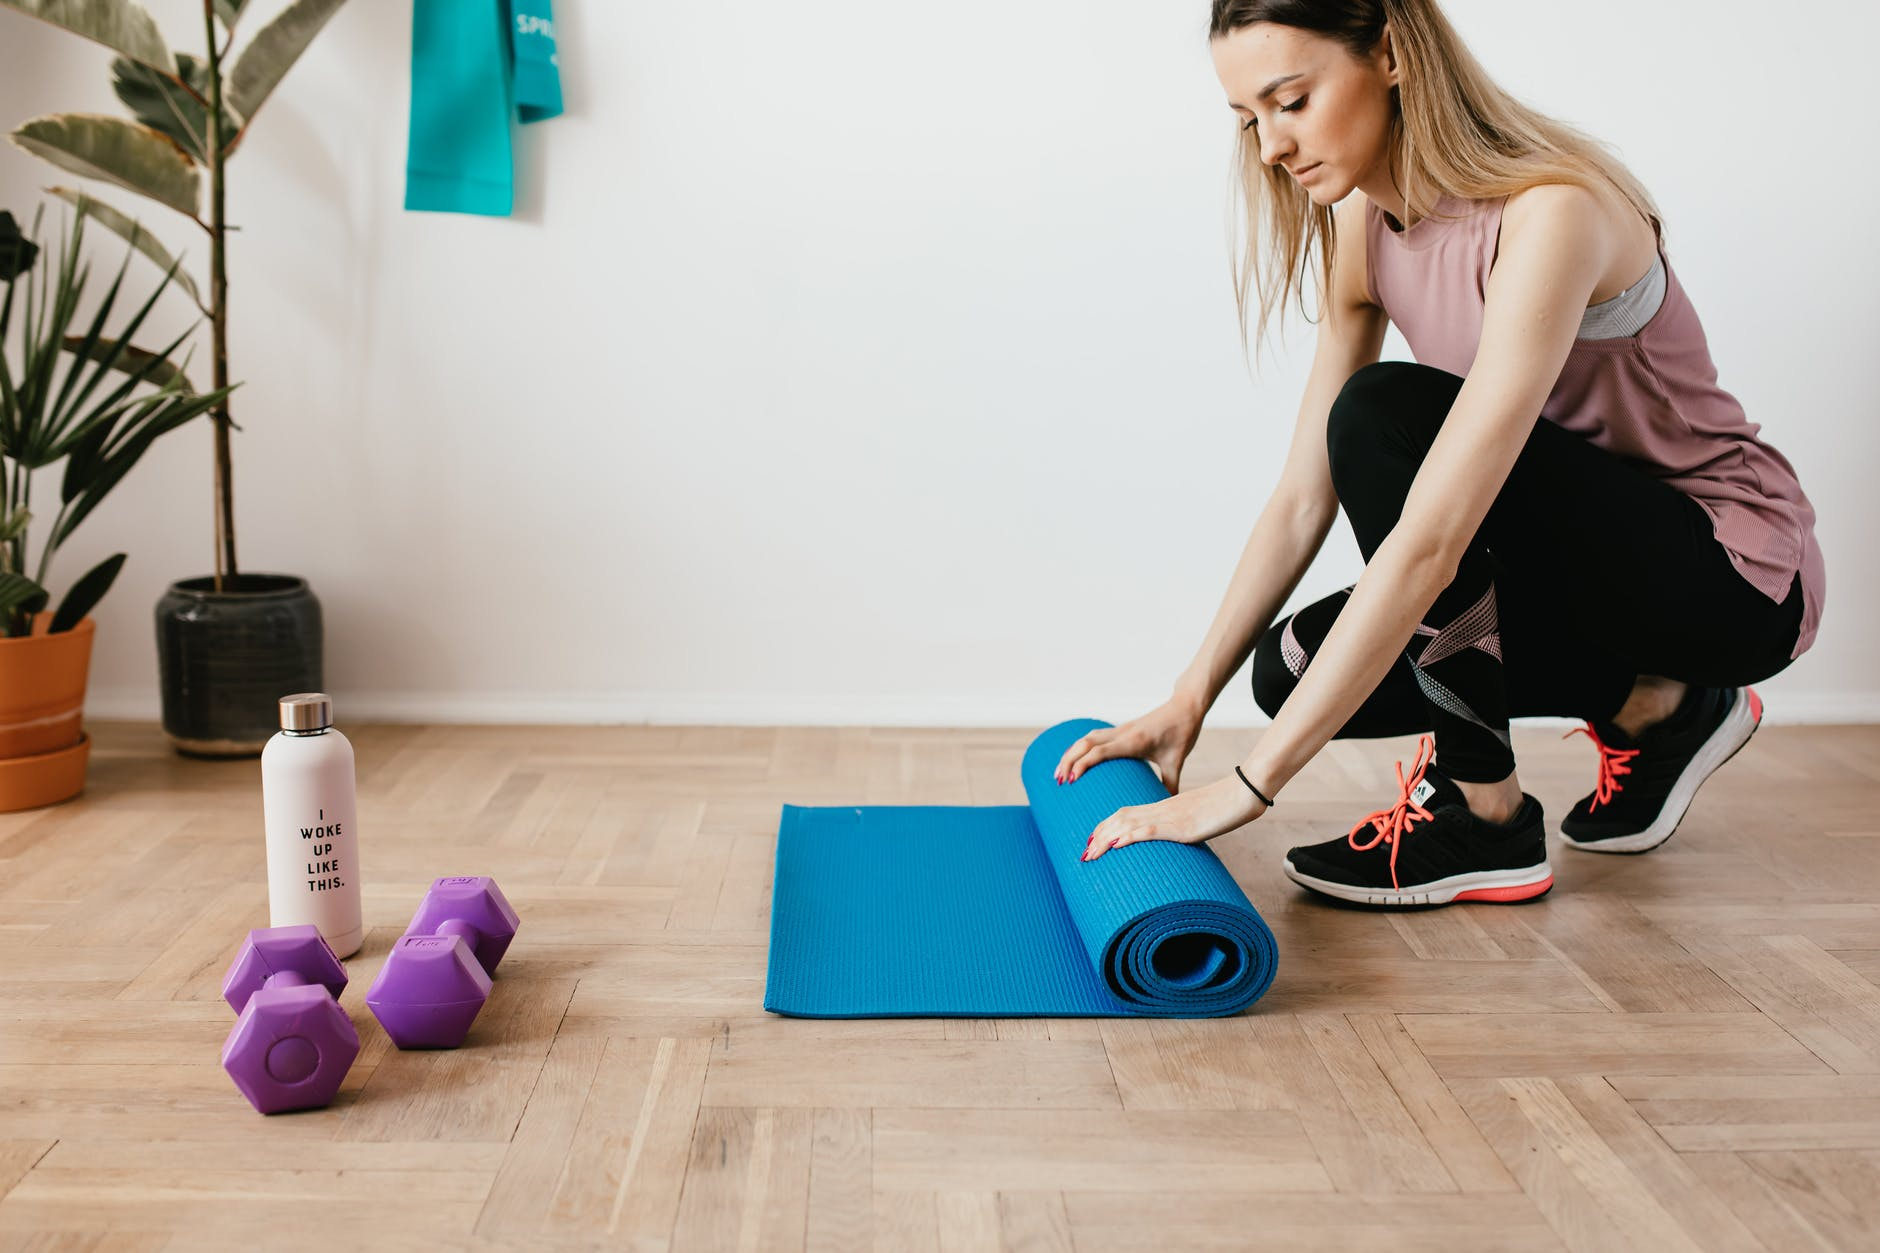 A woman unfolds her workout mat on the floor, a set of weights are seen nearby.